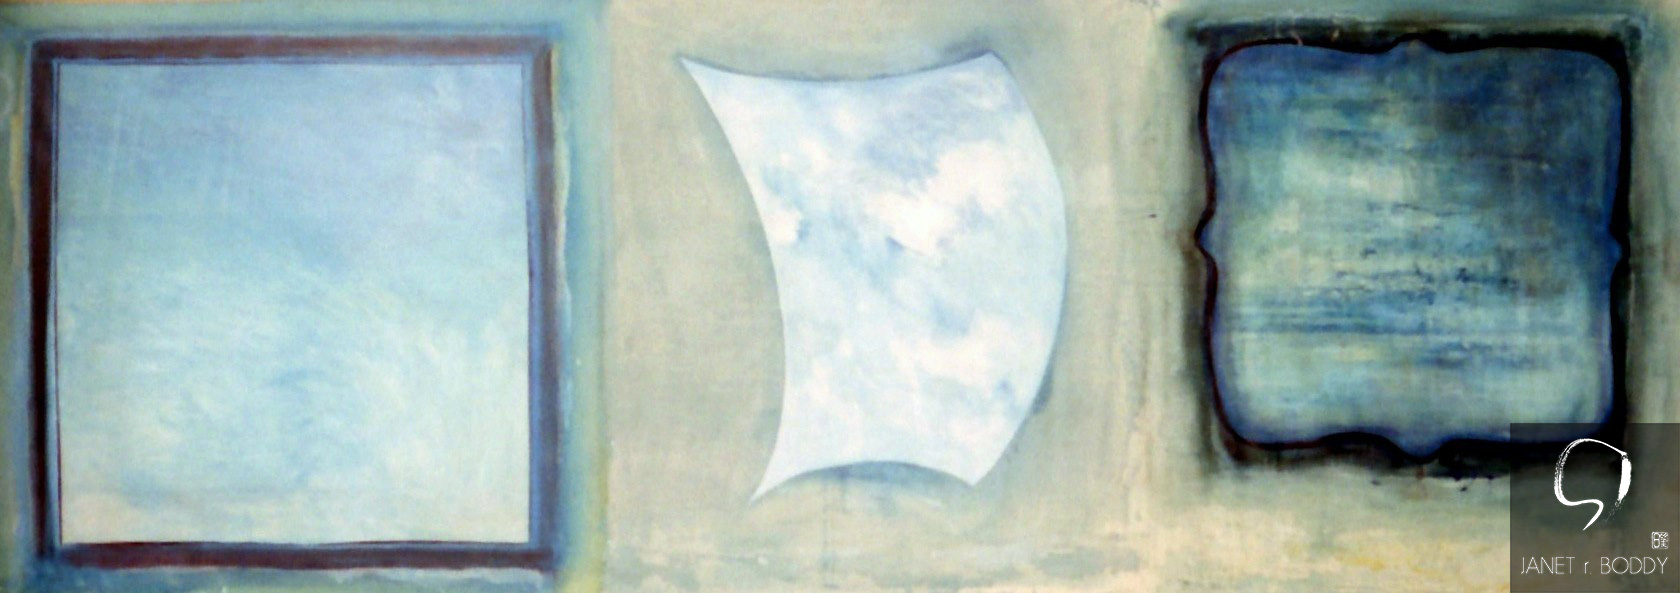 1997, Acrylic on canvas - 183x266cm. Grand Central Gallery, Melbourne